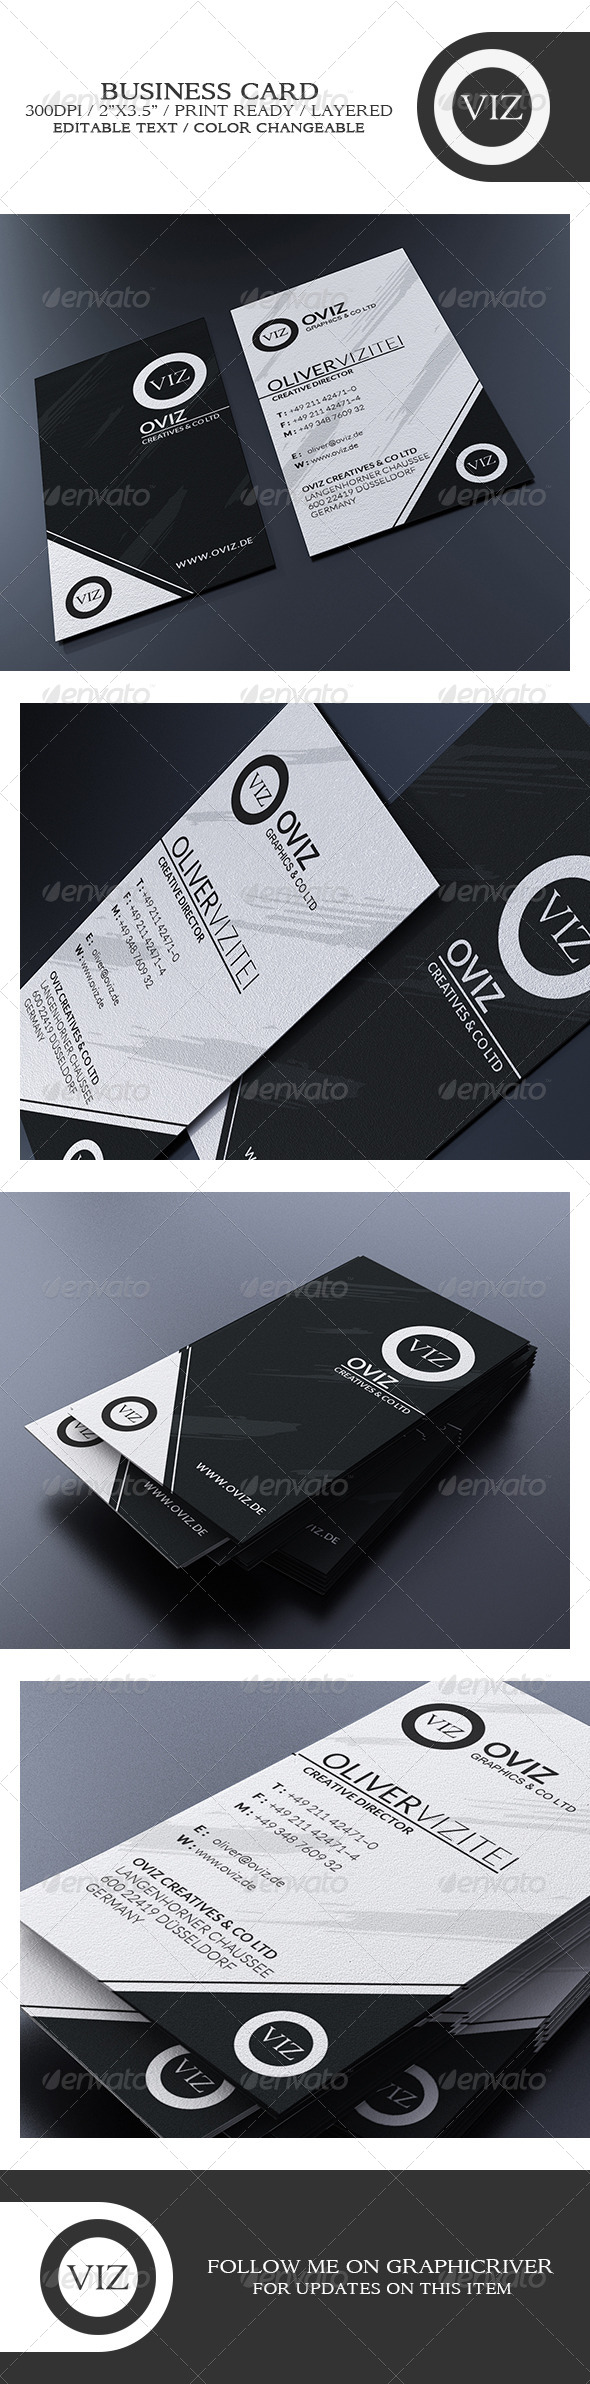 GraphicRiver Black And White Business Card 8748560